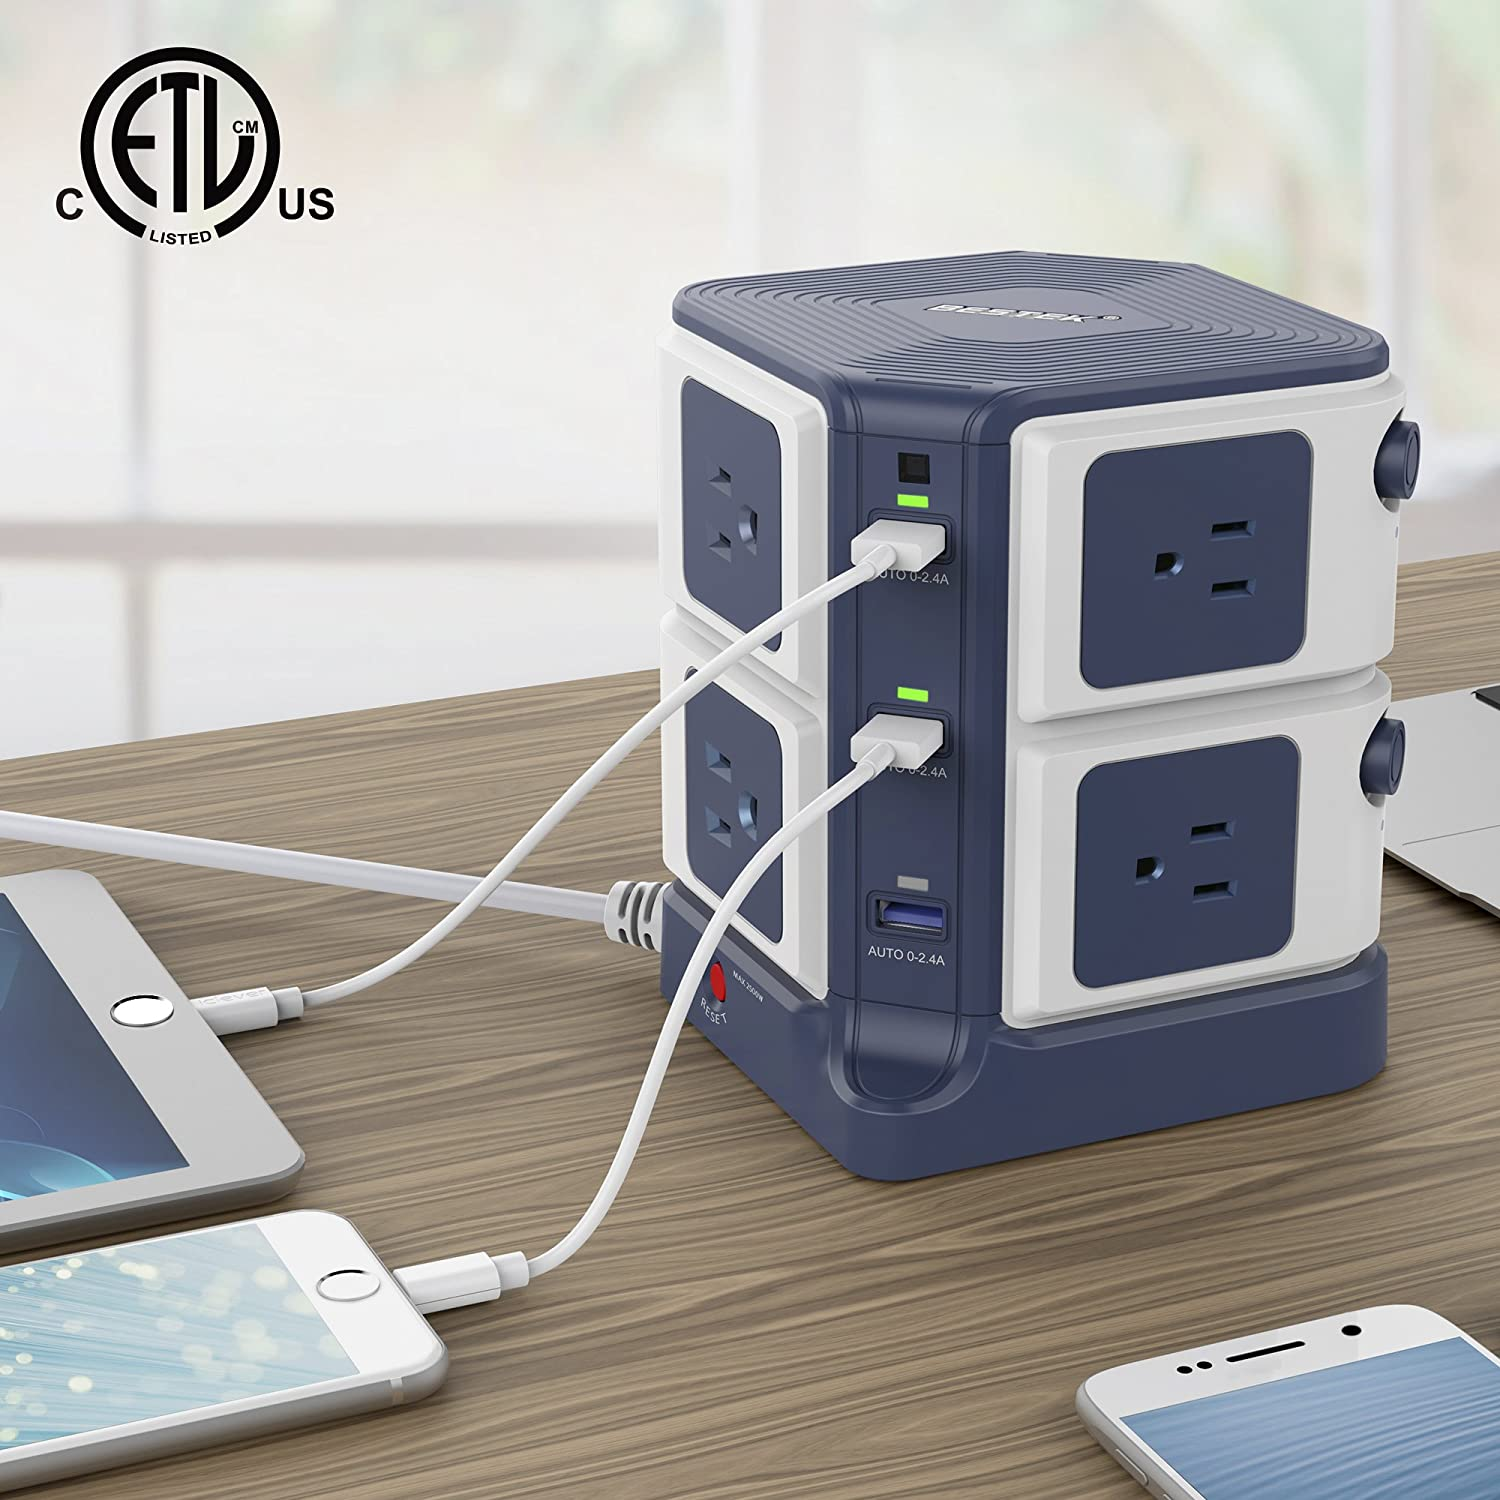 BESTEK Surge Protector 8-Outlet and 40W 6-Port Smart USB Power Strip with 1500 Joules Surge Protection,ETL Listed,Dorm Room Accessories MRJ8008